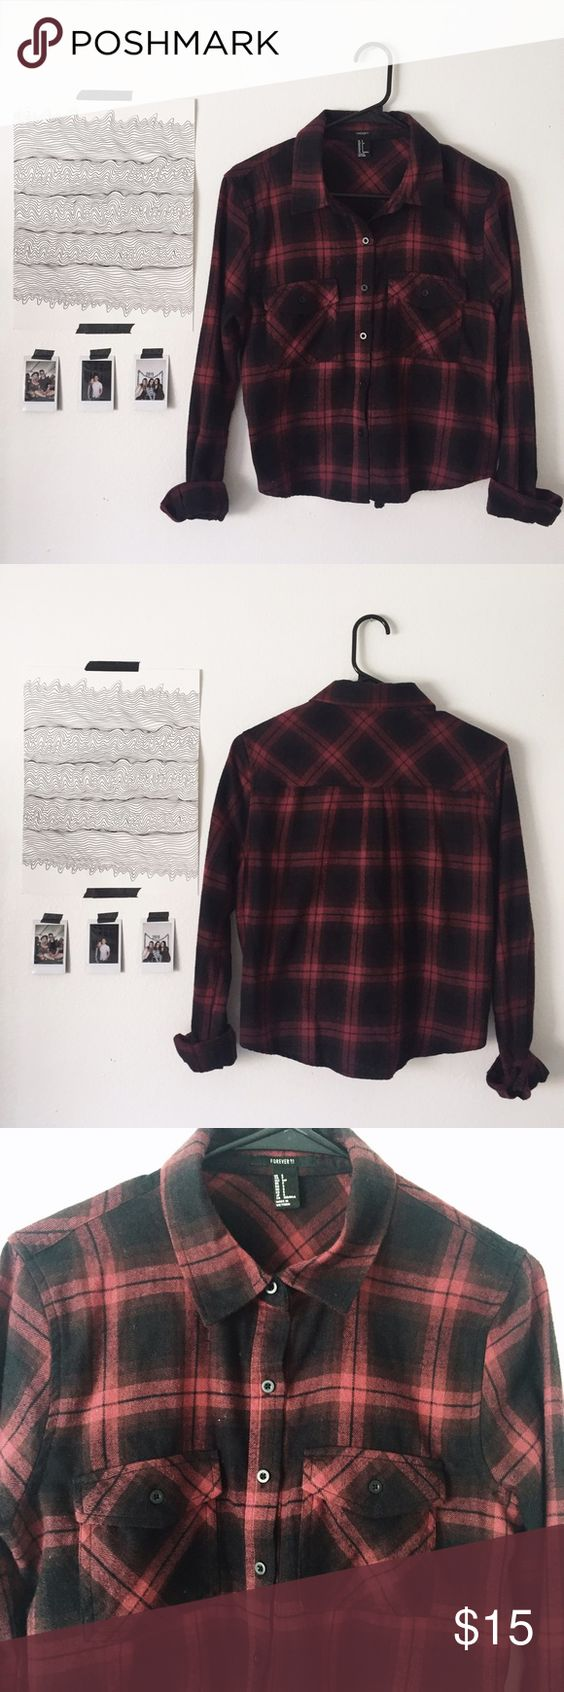 Forever 21 Cropped Flannel Super cute black and red plaid flannel! Never been worn, perfect condition! Size Small. Forever 21 Tops Button Down Shirts